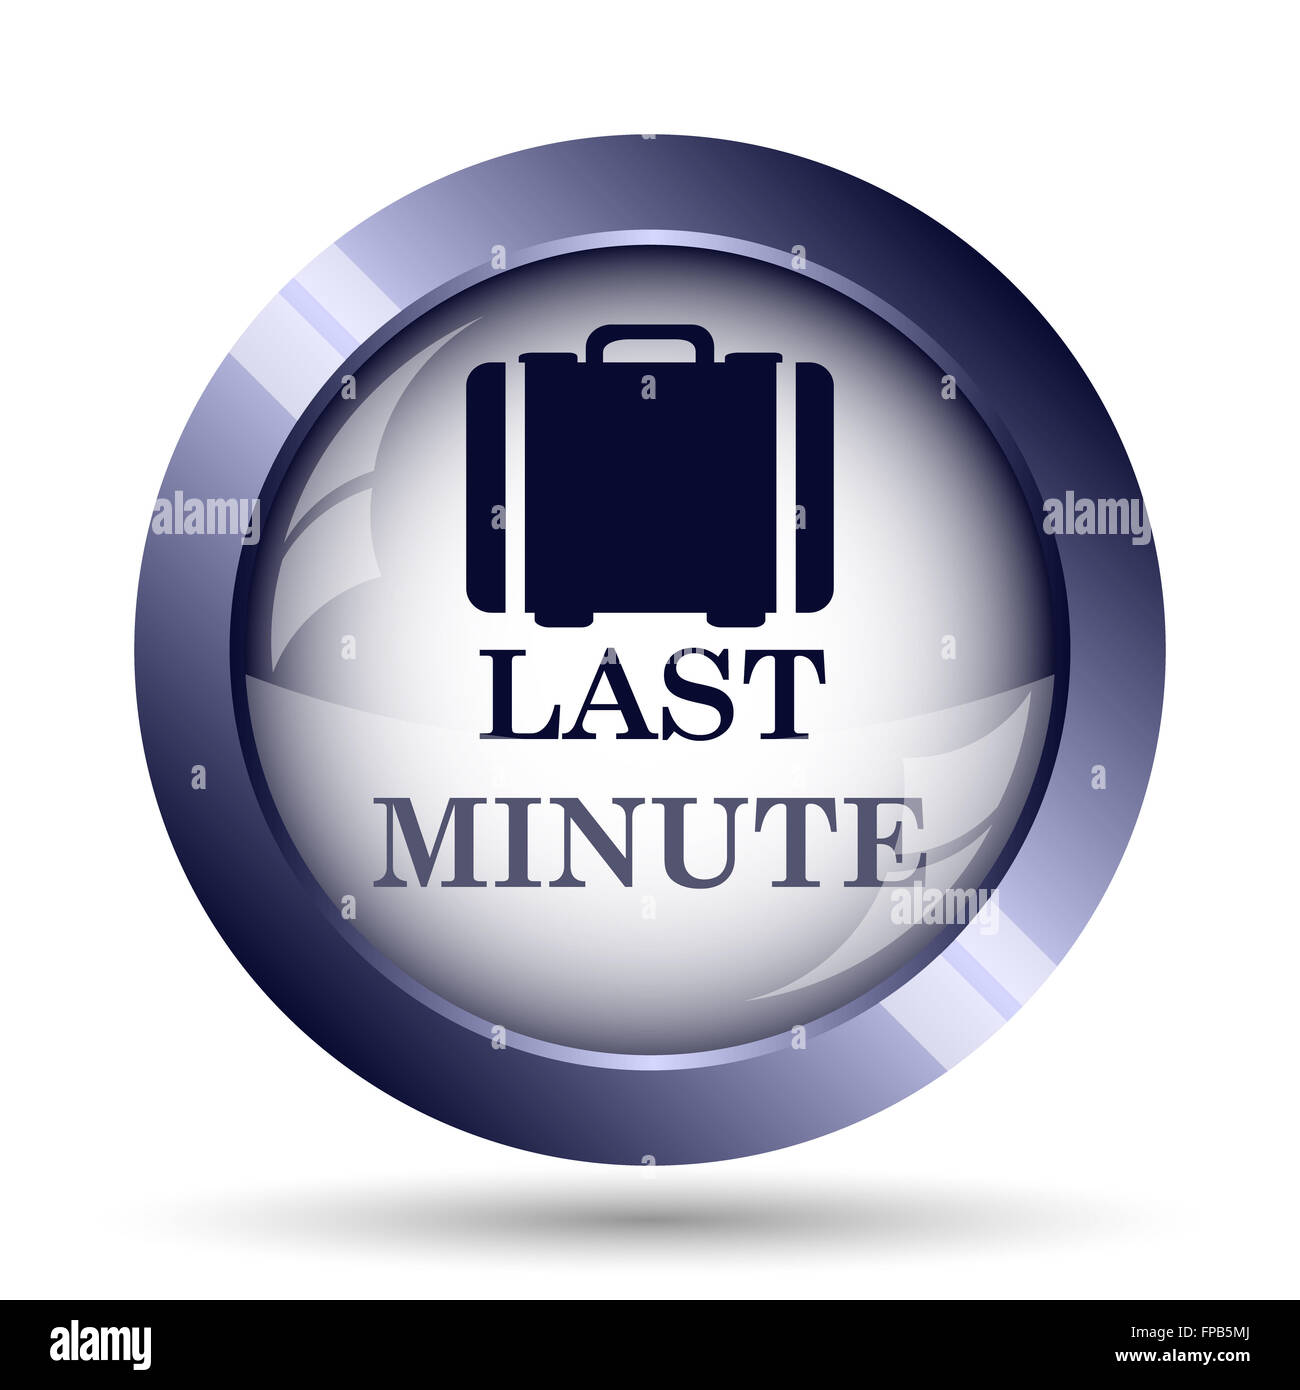 Last minute icon. Internet button on white background. - Stock Image